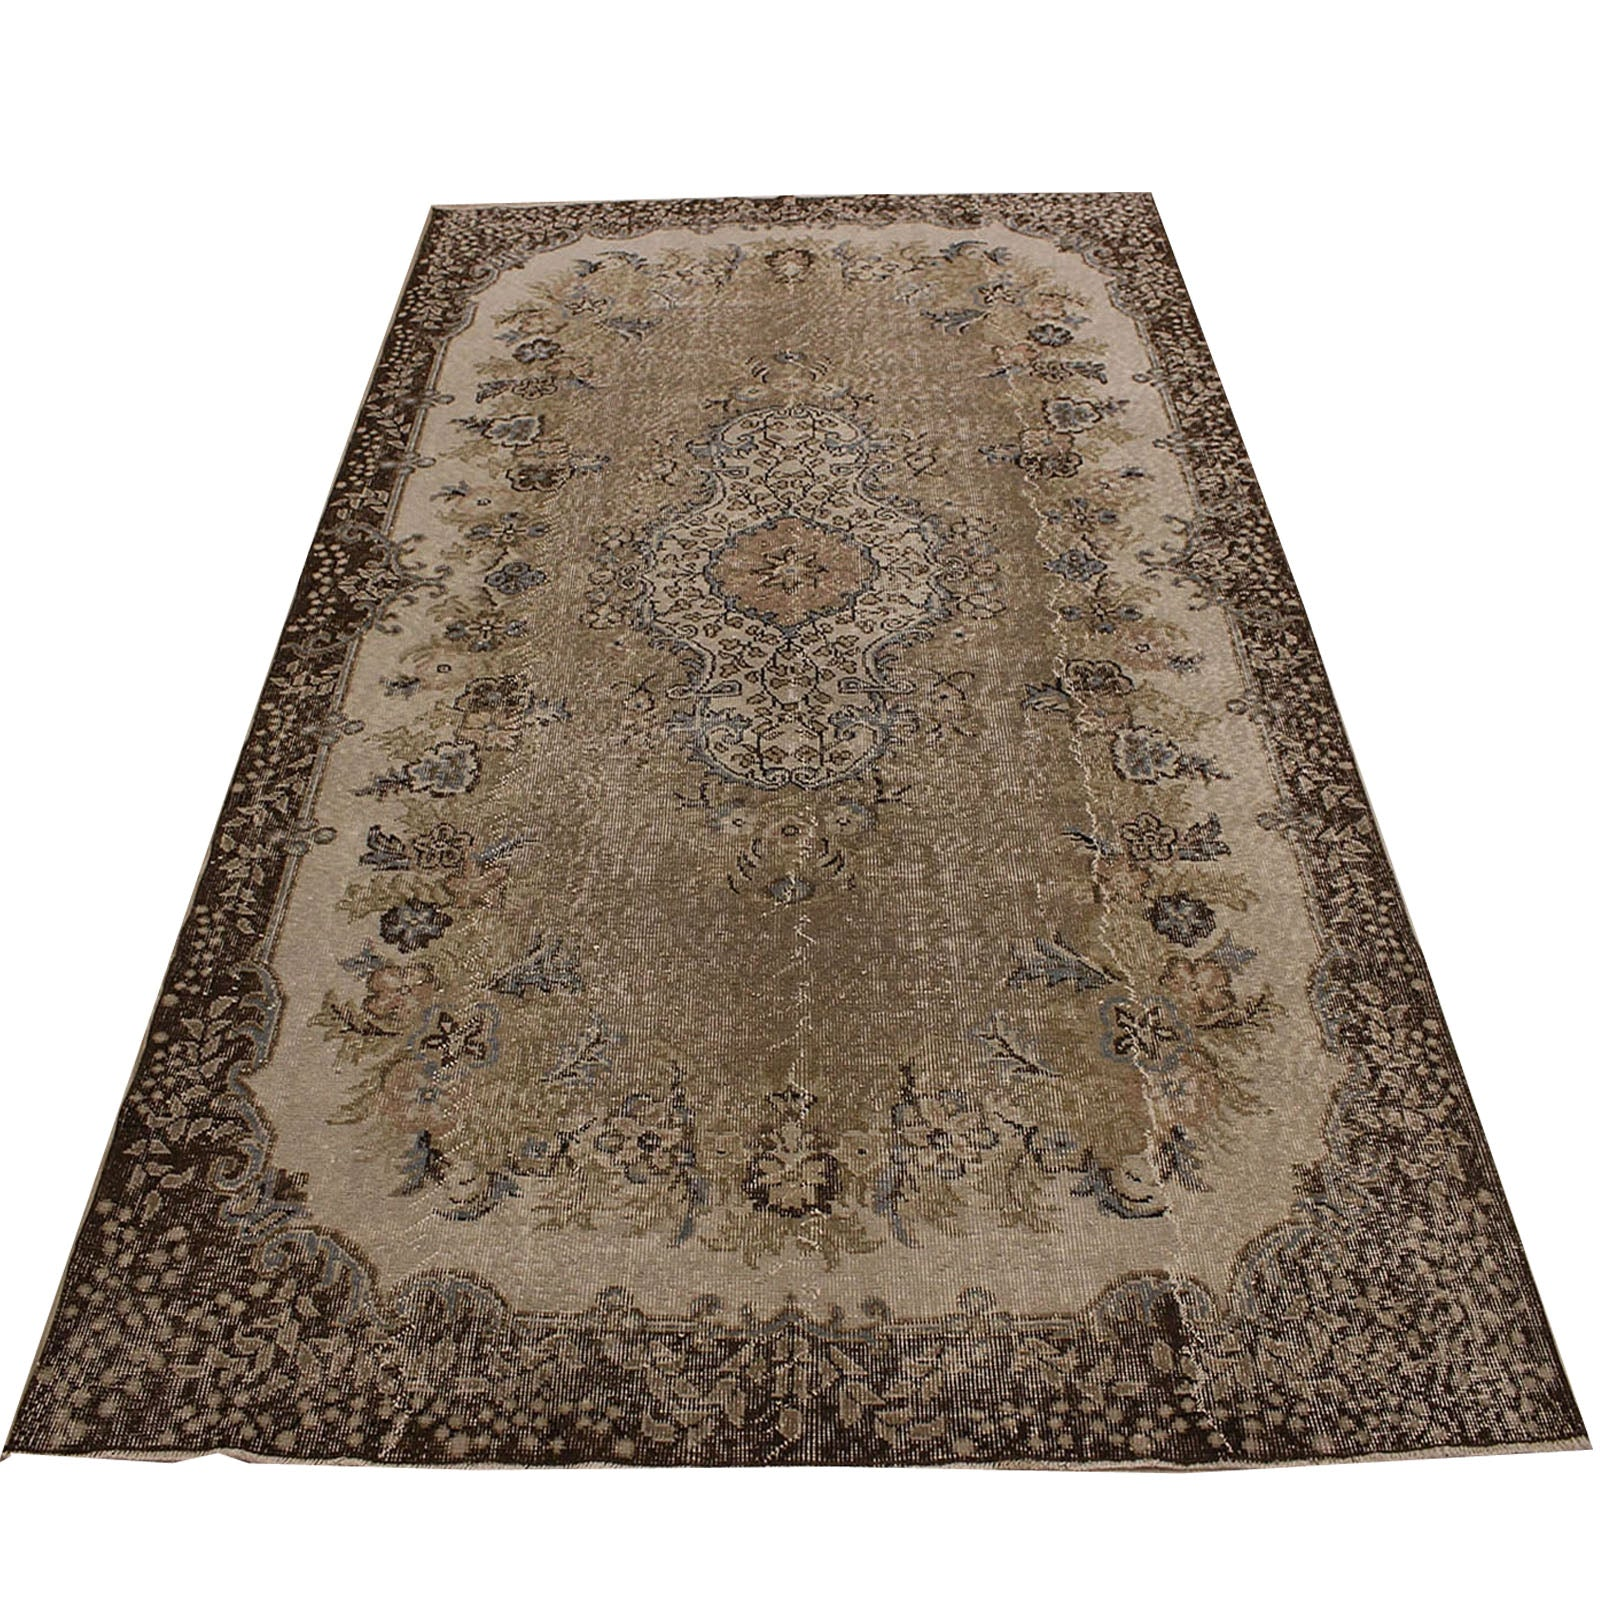 Hali 172X281 CM Bursa Handmade over dyed rug 2284